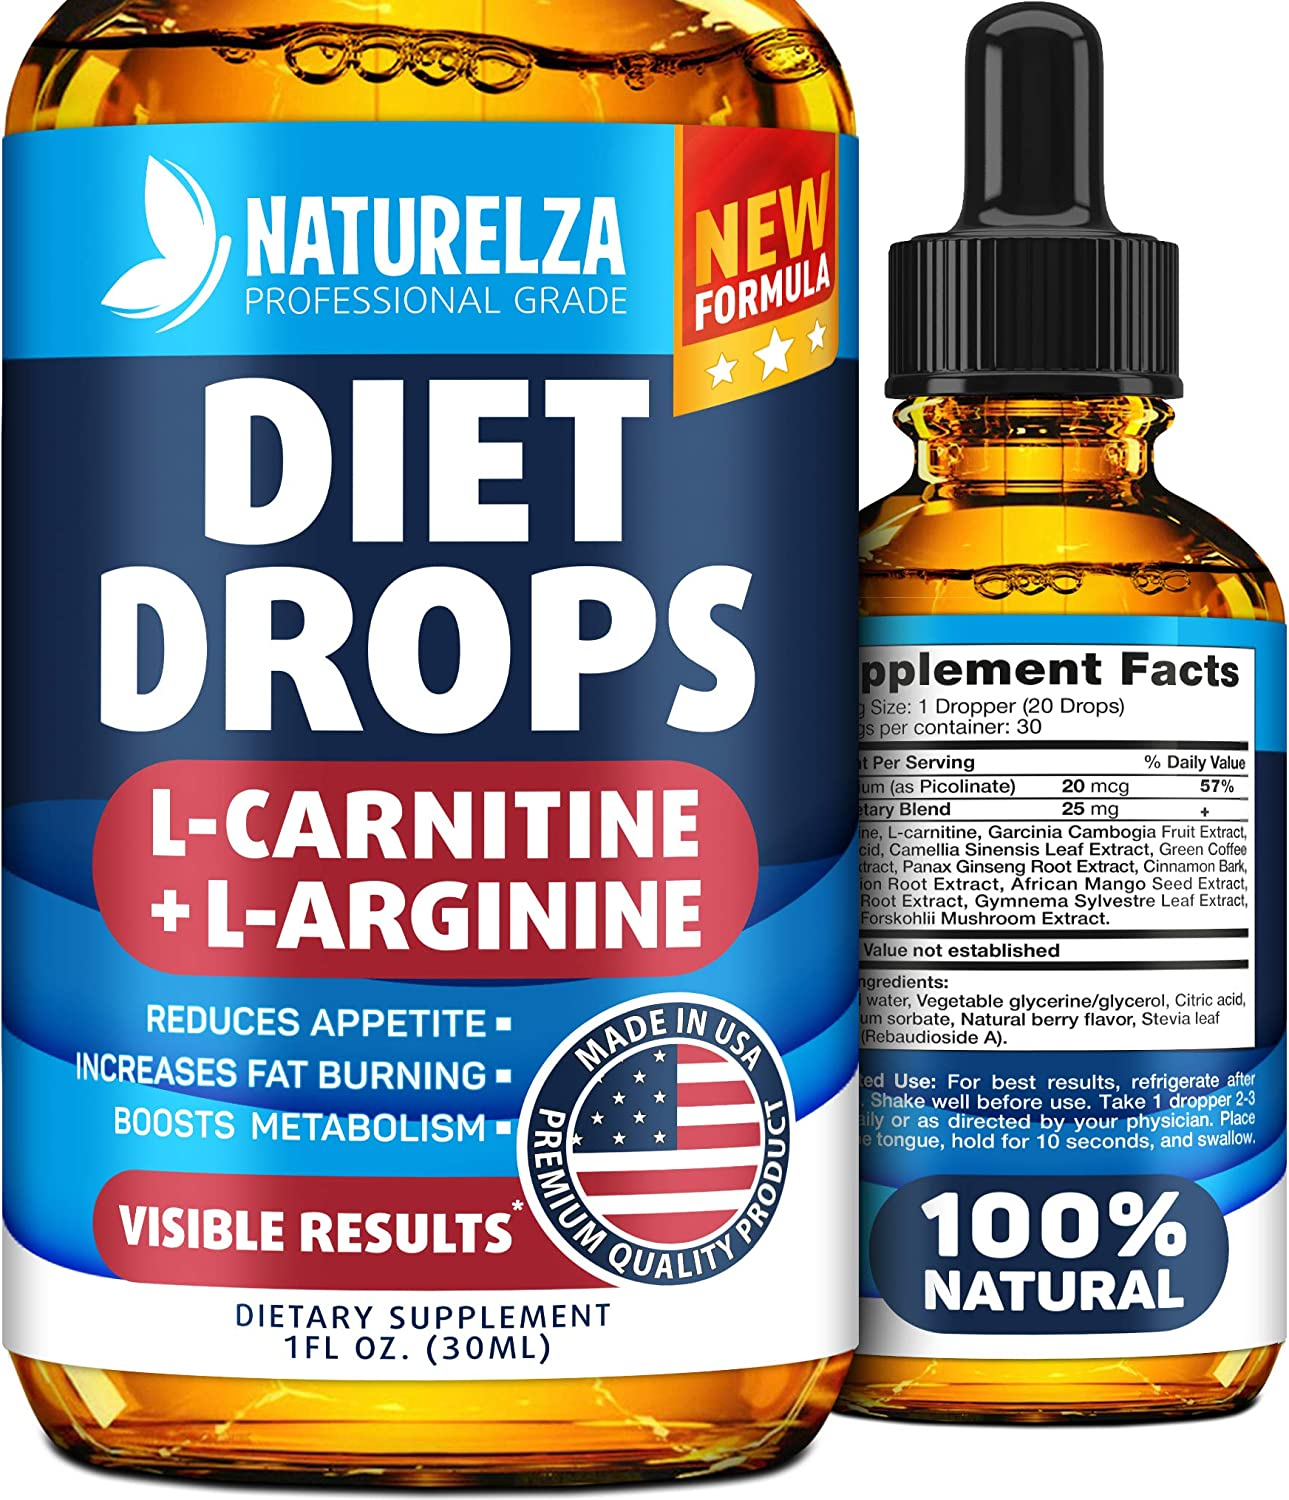 Weight Loss Drops - Made in USA - Best Diet Drops for Fat Loss - Effective Appetite Suppressant & Metabolism Booster - 100% Natural, Safe & Proven Ingredients - Non GMO Fat Burner - Garcinia Cambogia: Health & Personal Care